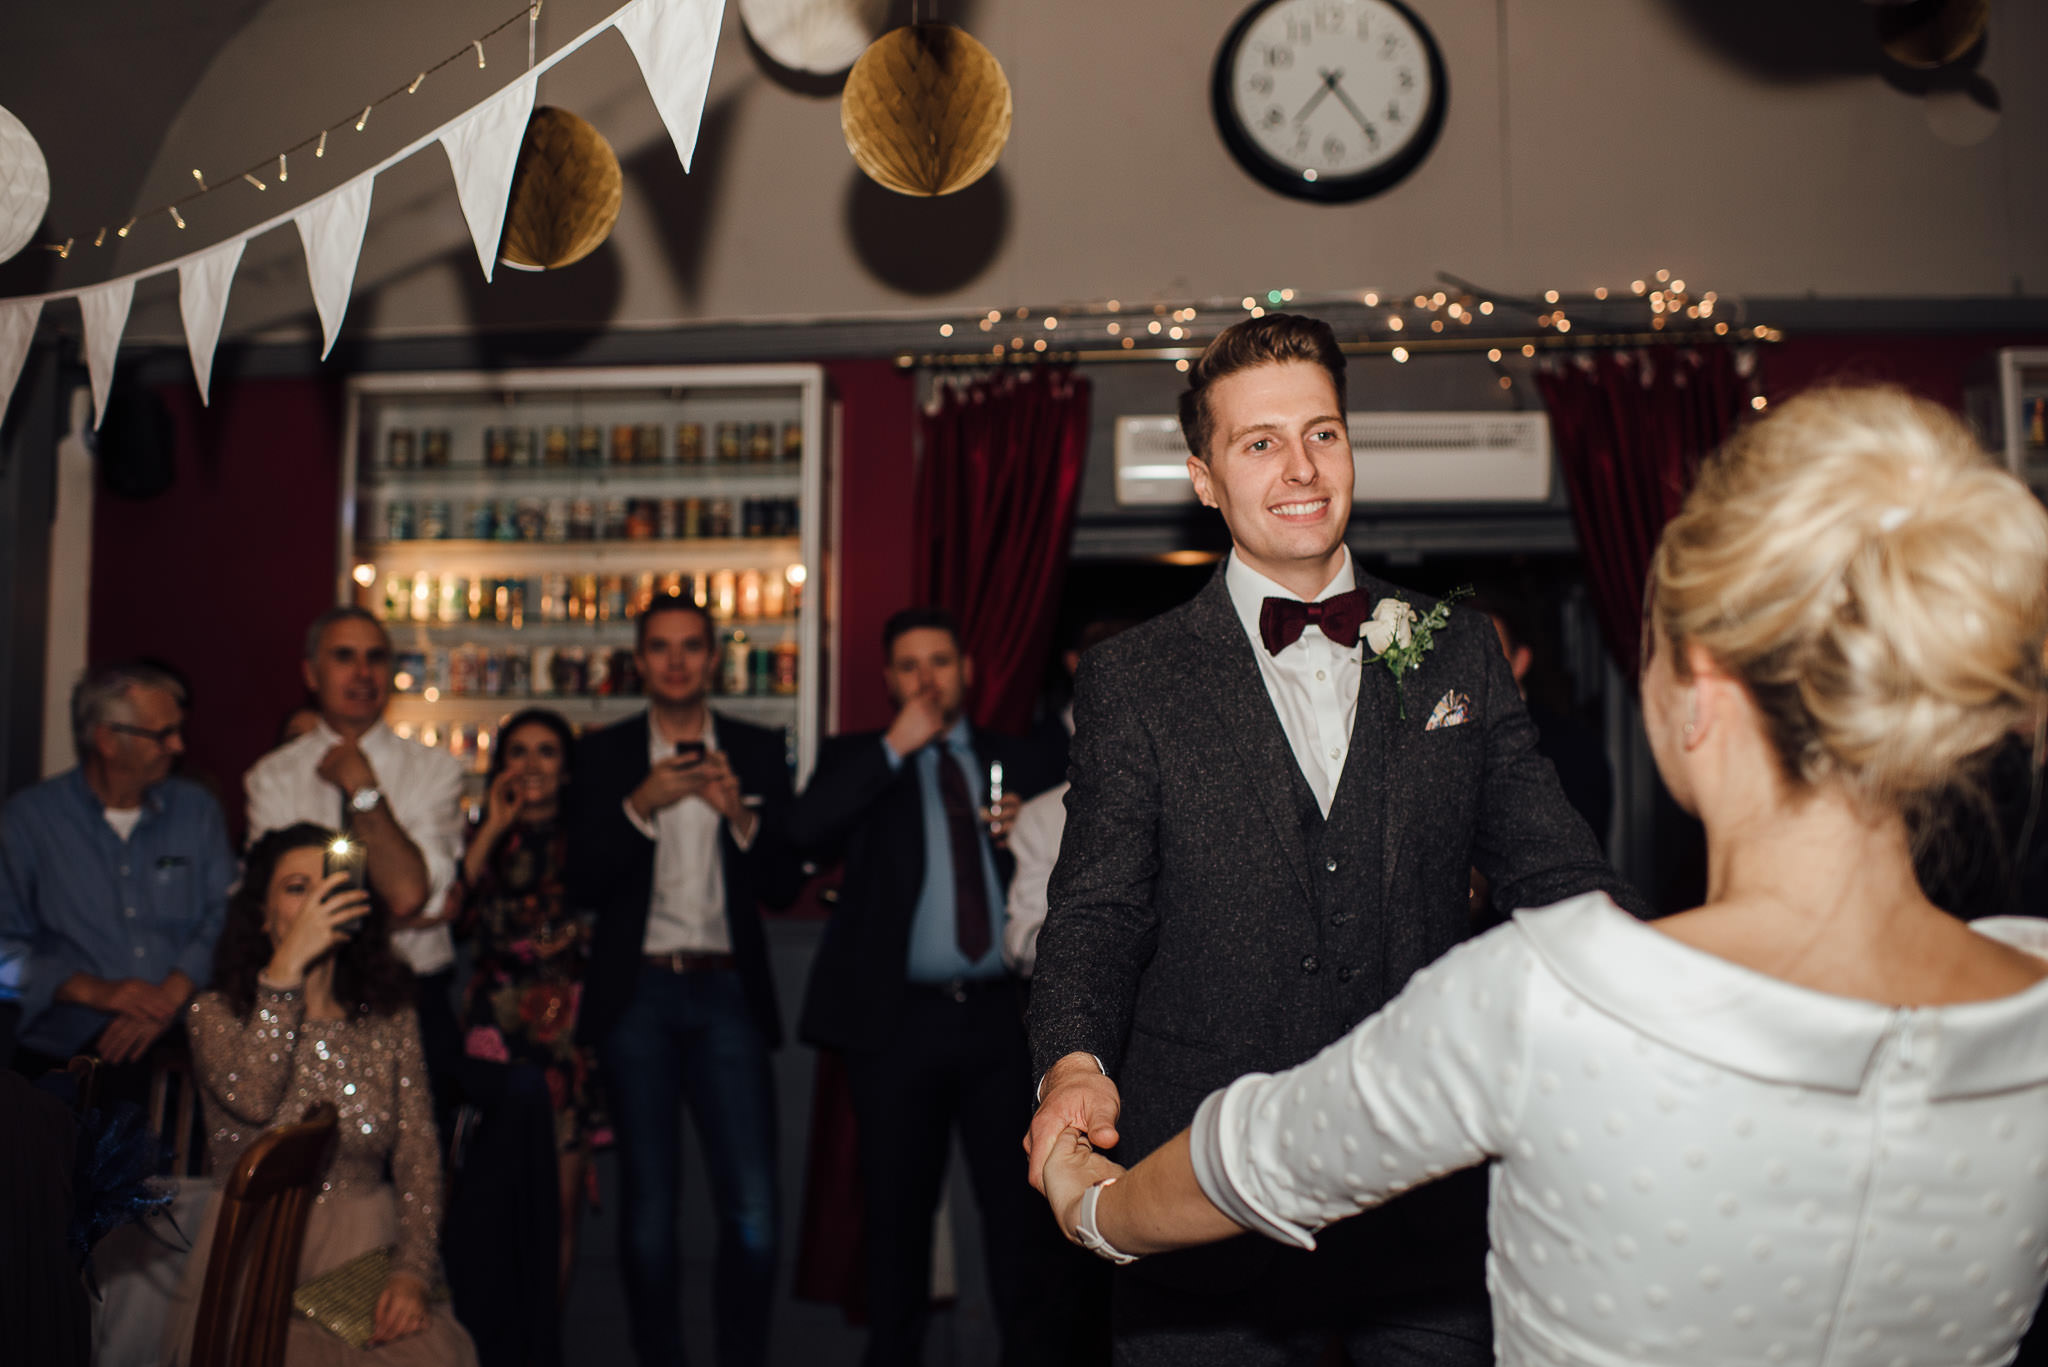 First dance in the londesborough pub in stoke newington town hall wedding by creative and alternative london wedding photographer the shannons photography